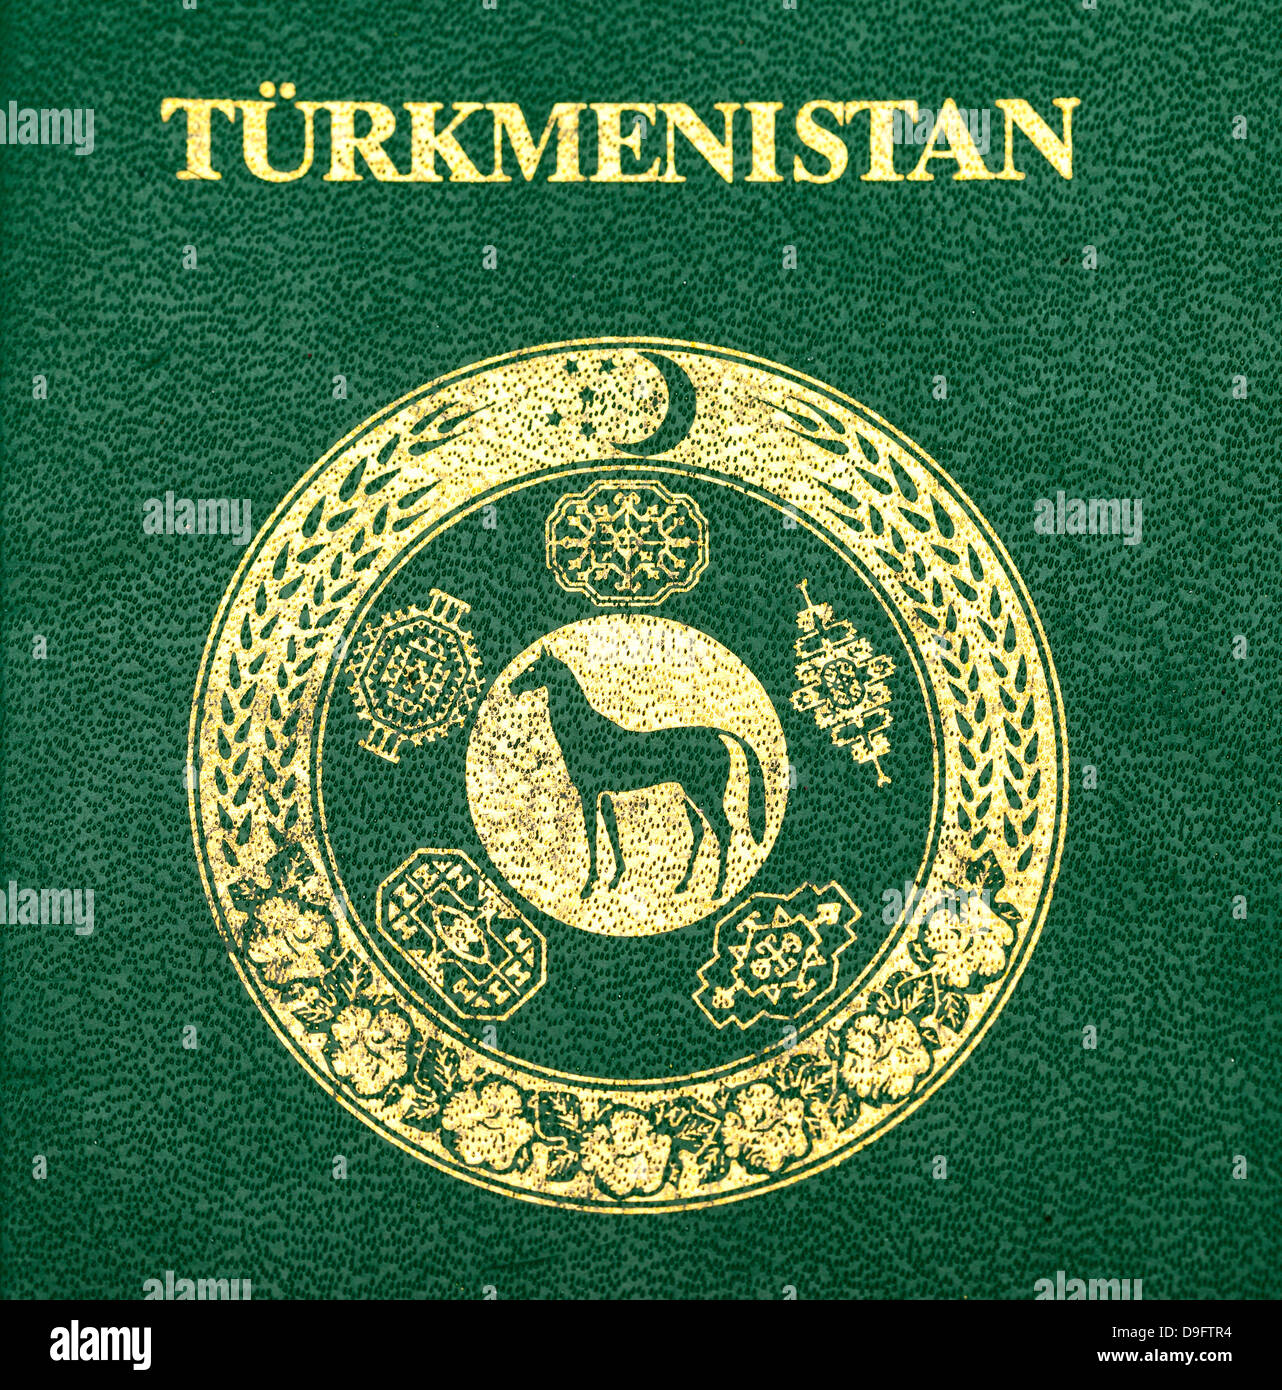 Fragment of the Turkmenistan passport cover - Stock Image